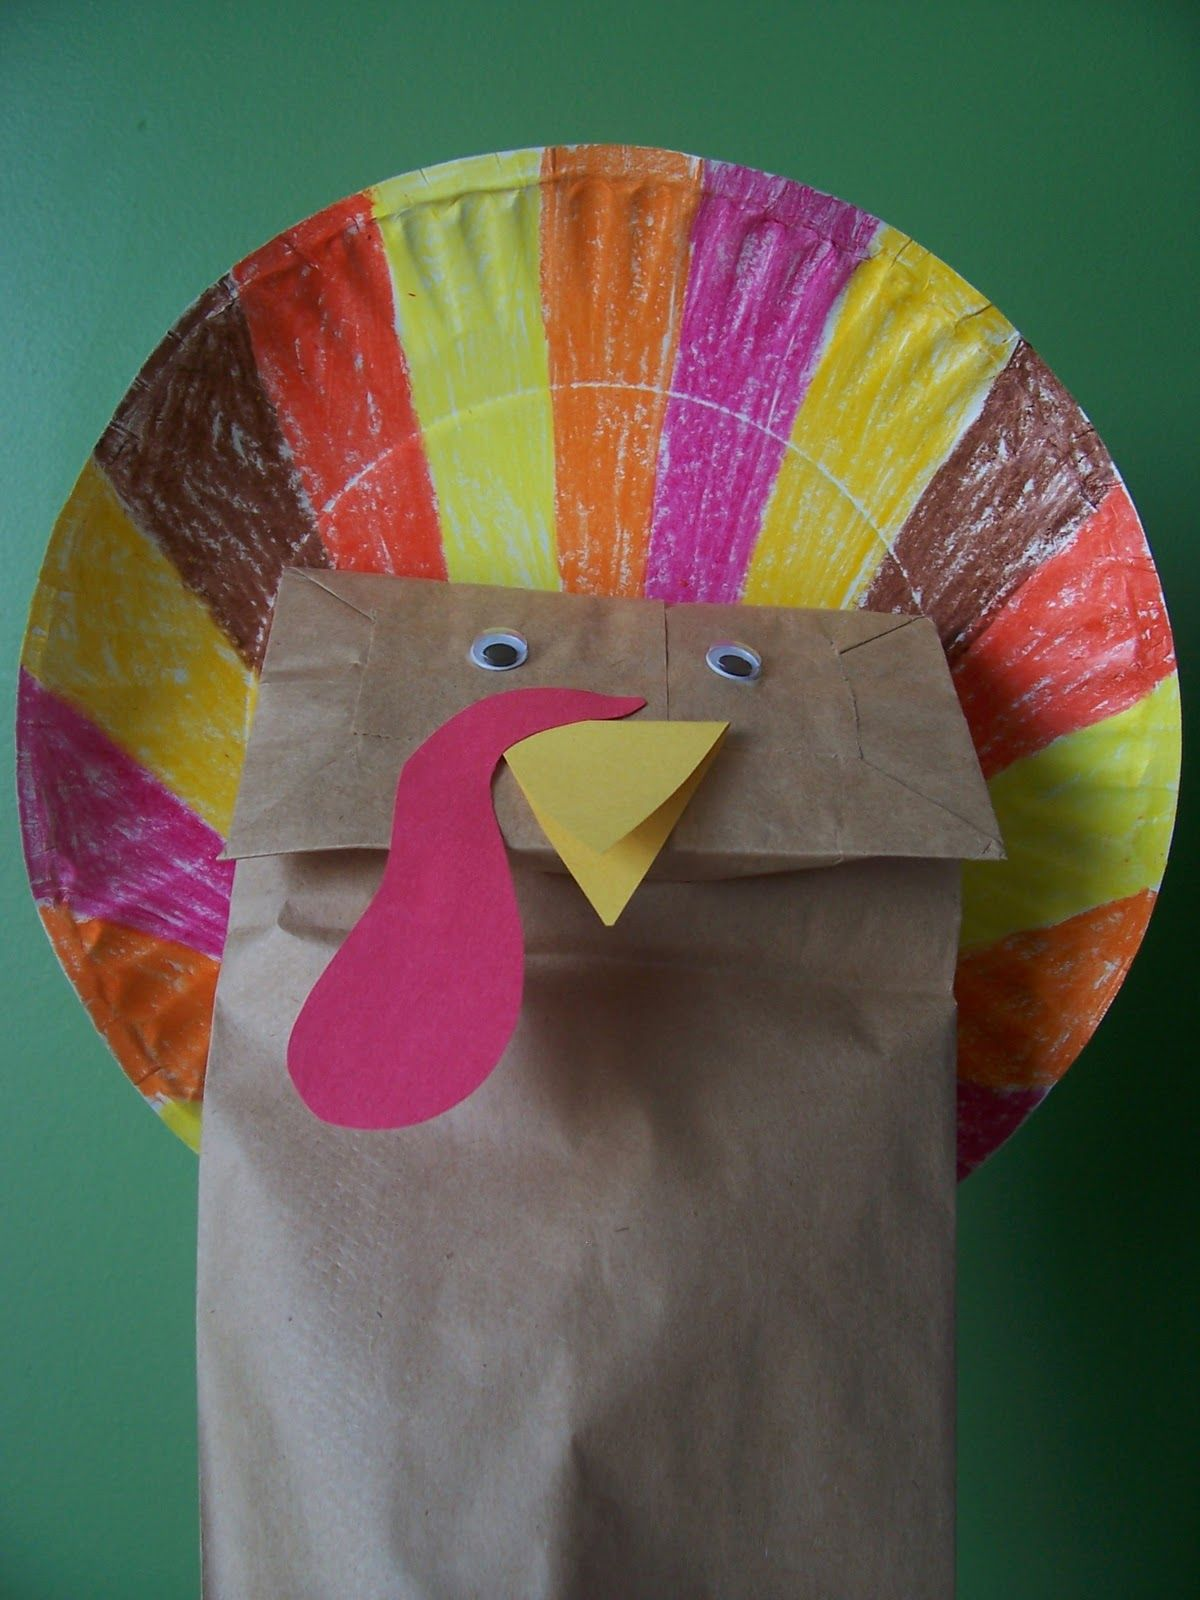 48+ Easy thanksgiving crafts for 3 year olds info